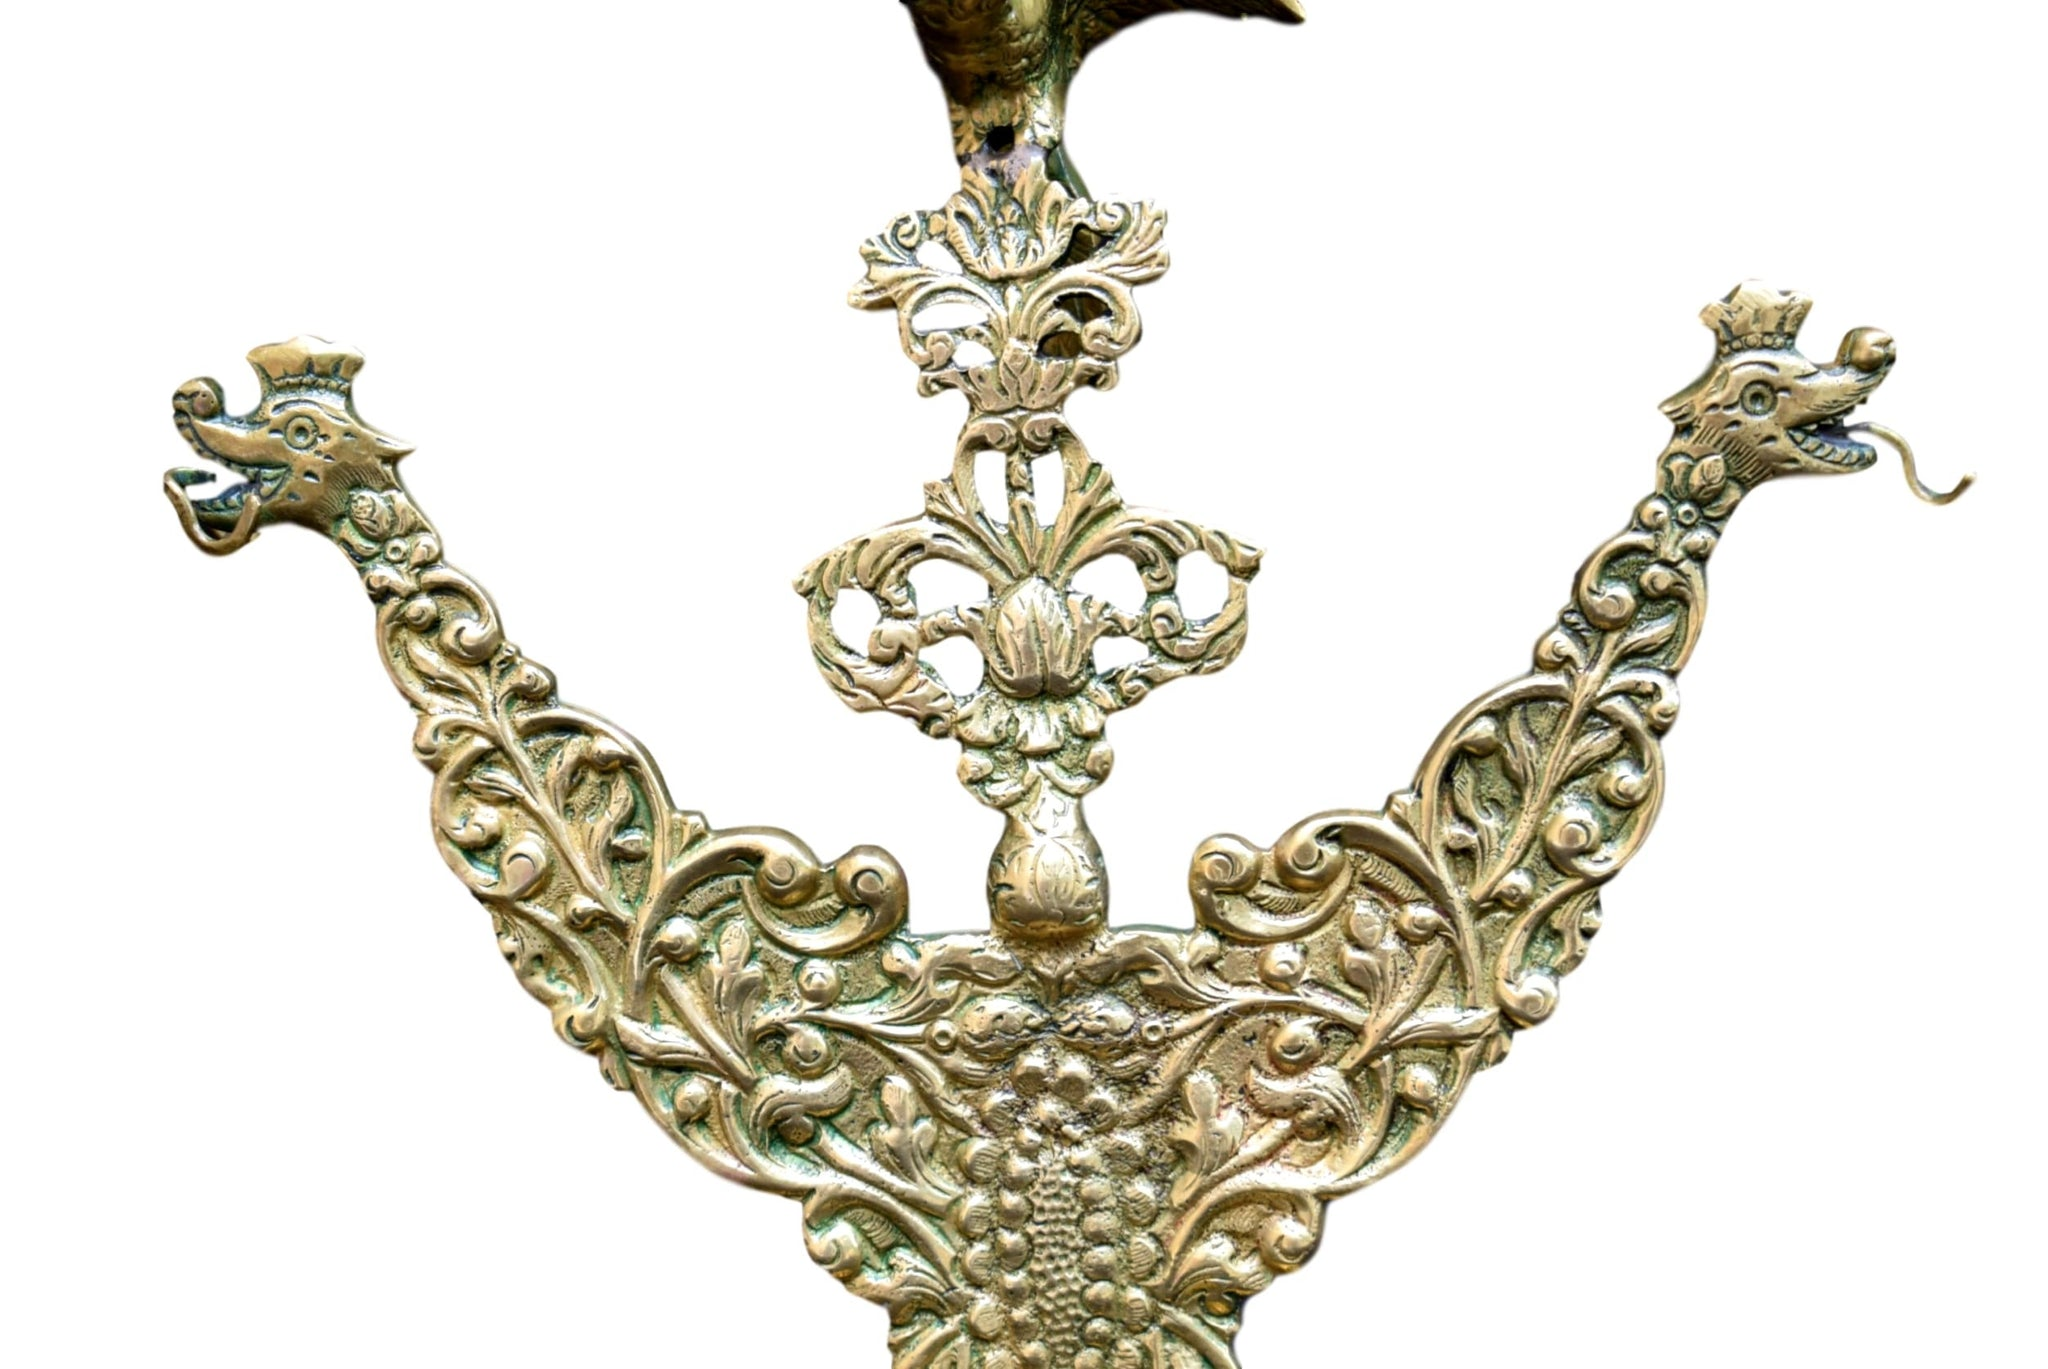 French Antique Napoleon III Necklace Jewelry Stand - Charmantiques